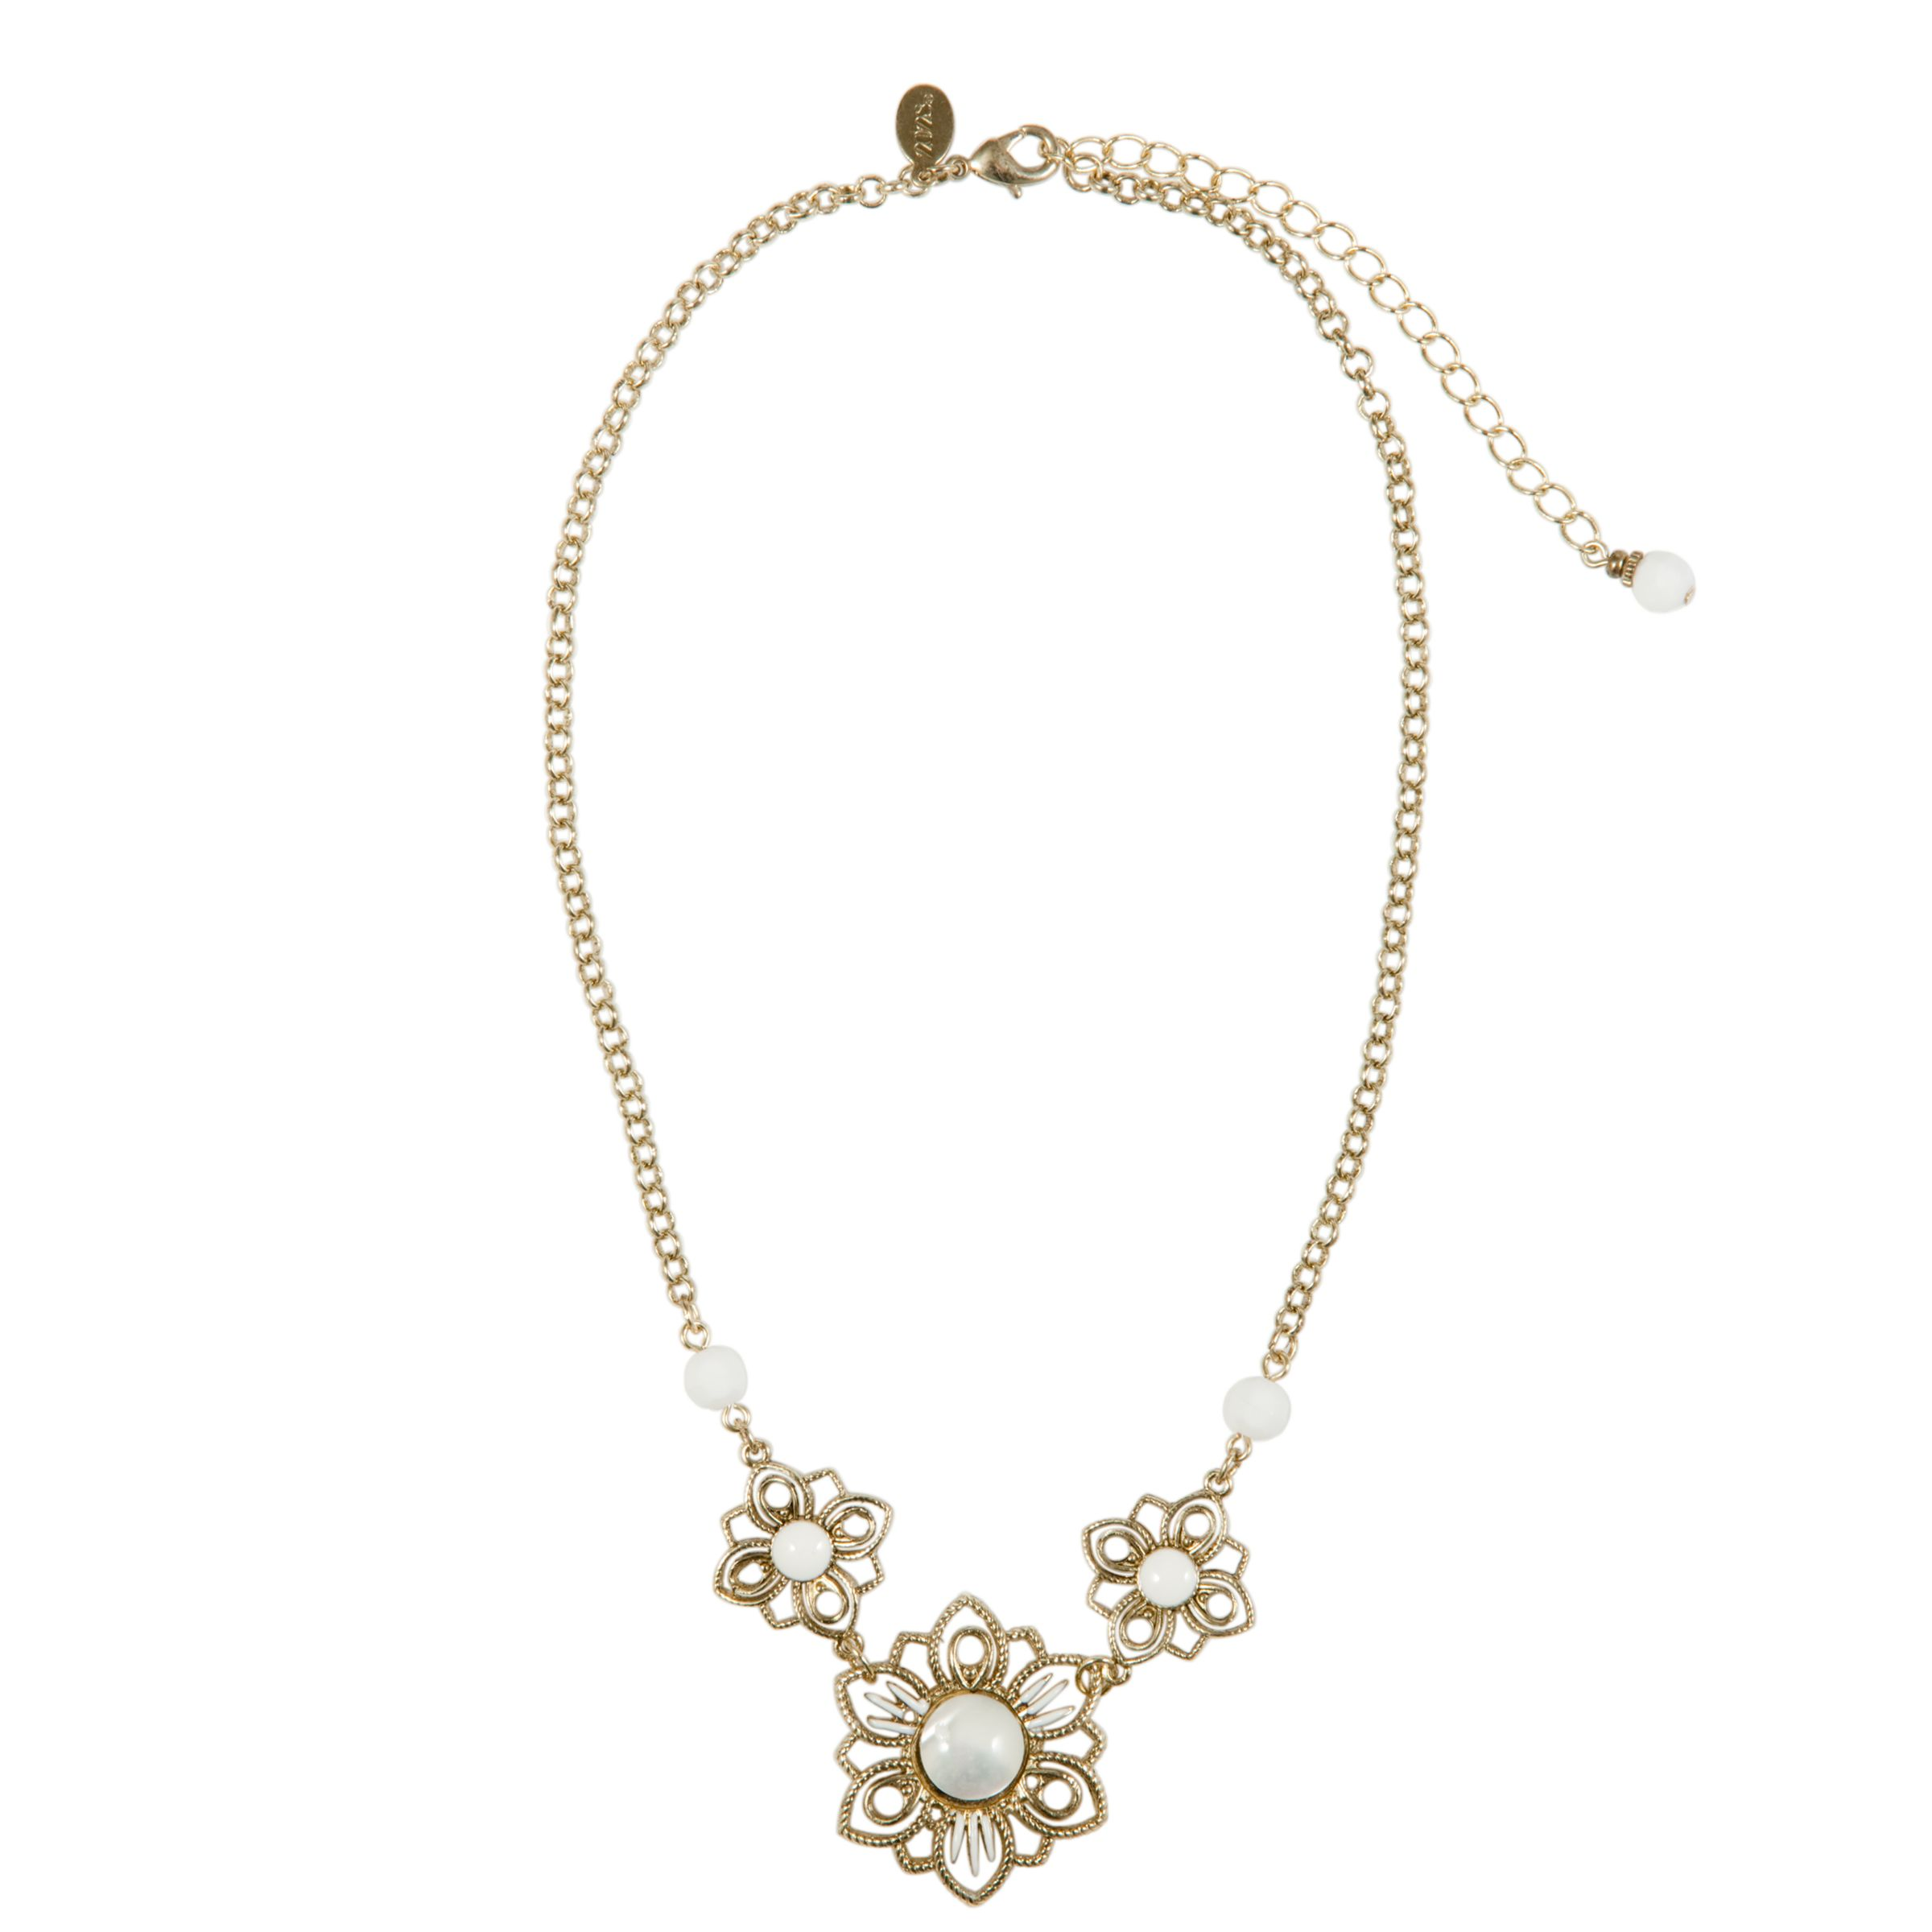 1928 New York Ivory Coast Vintage Brass Filigree Flower Pendant Necklace